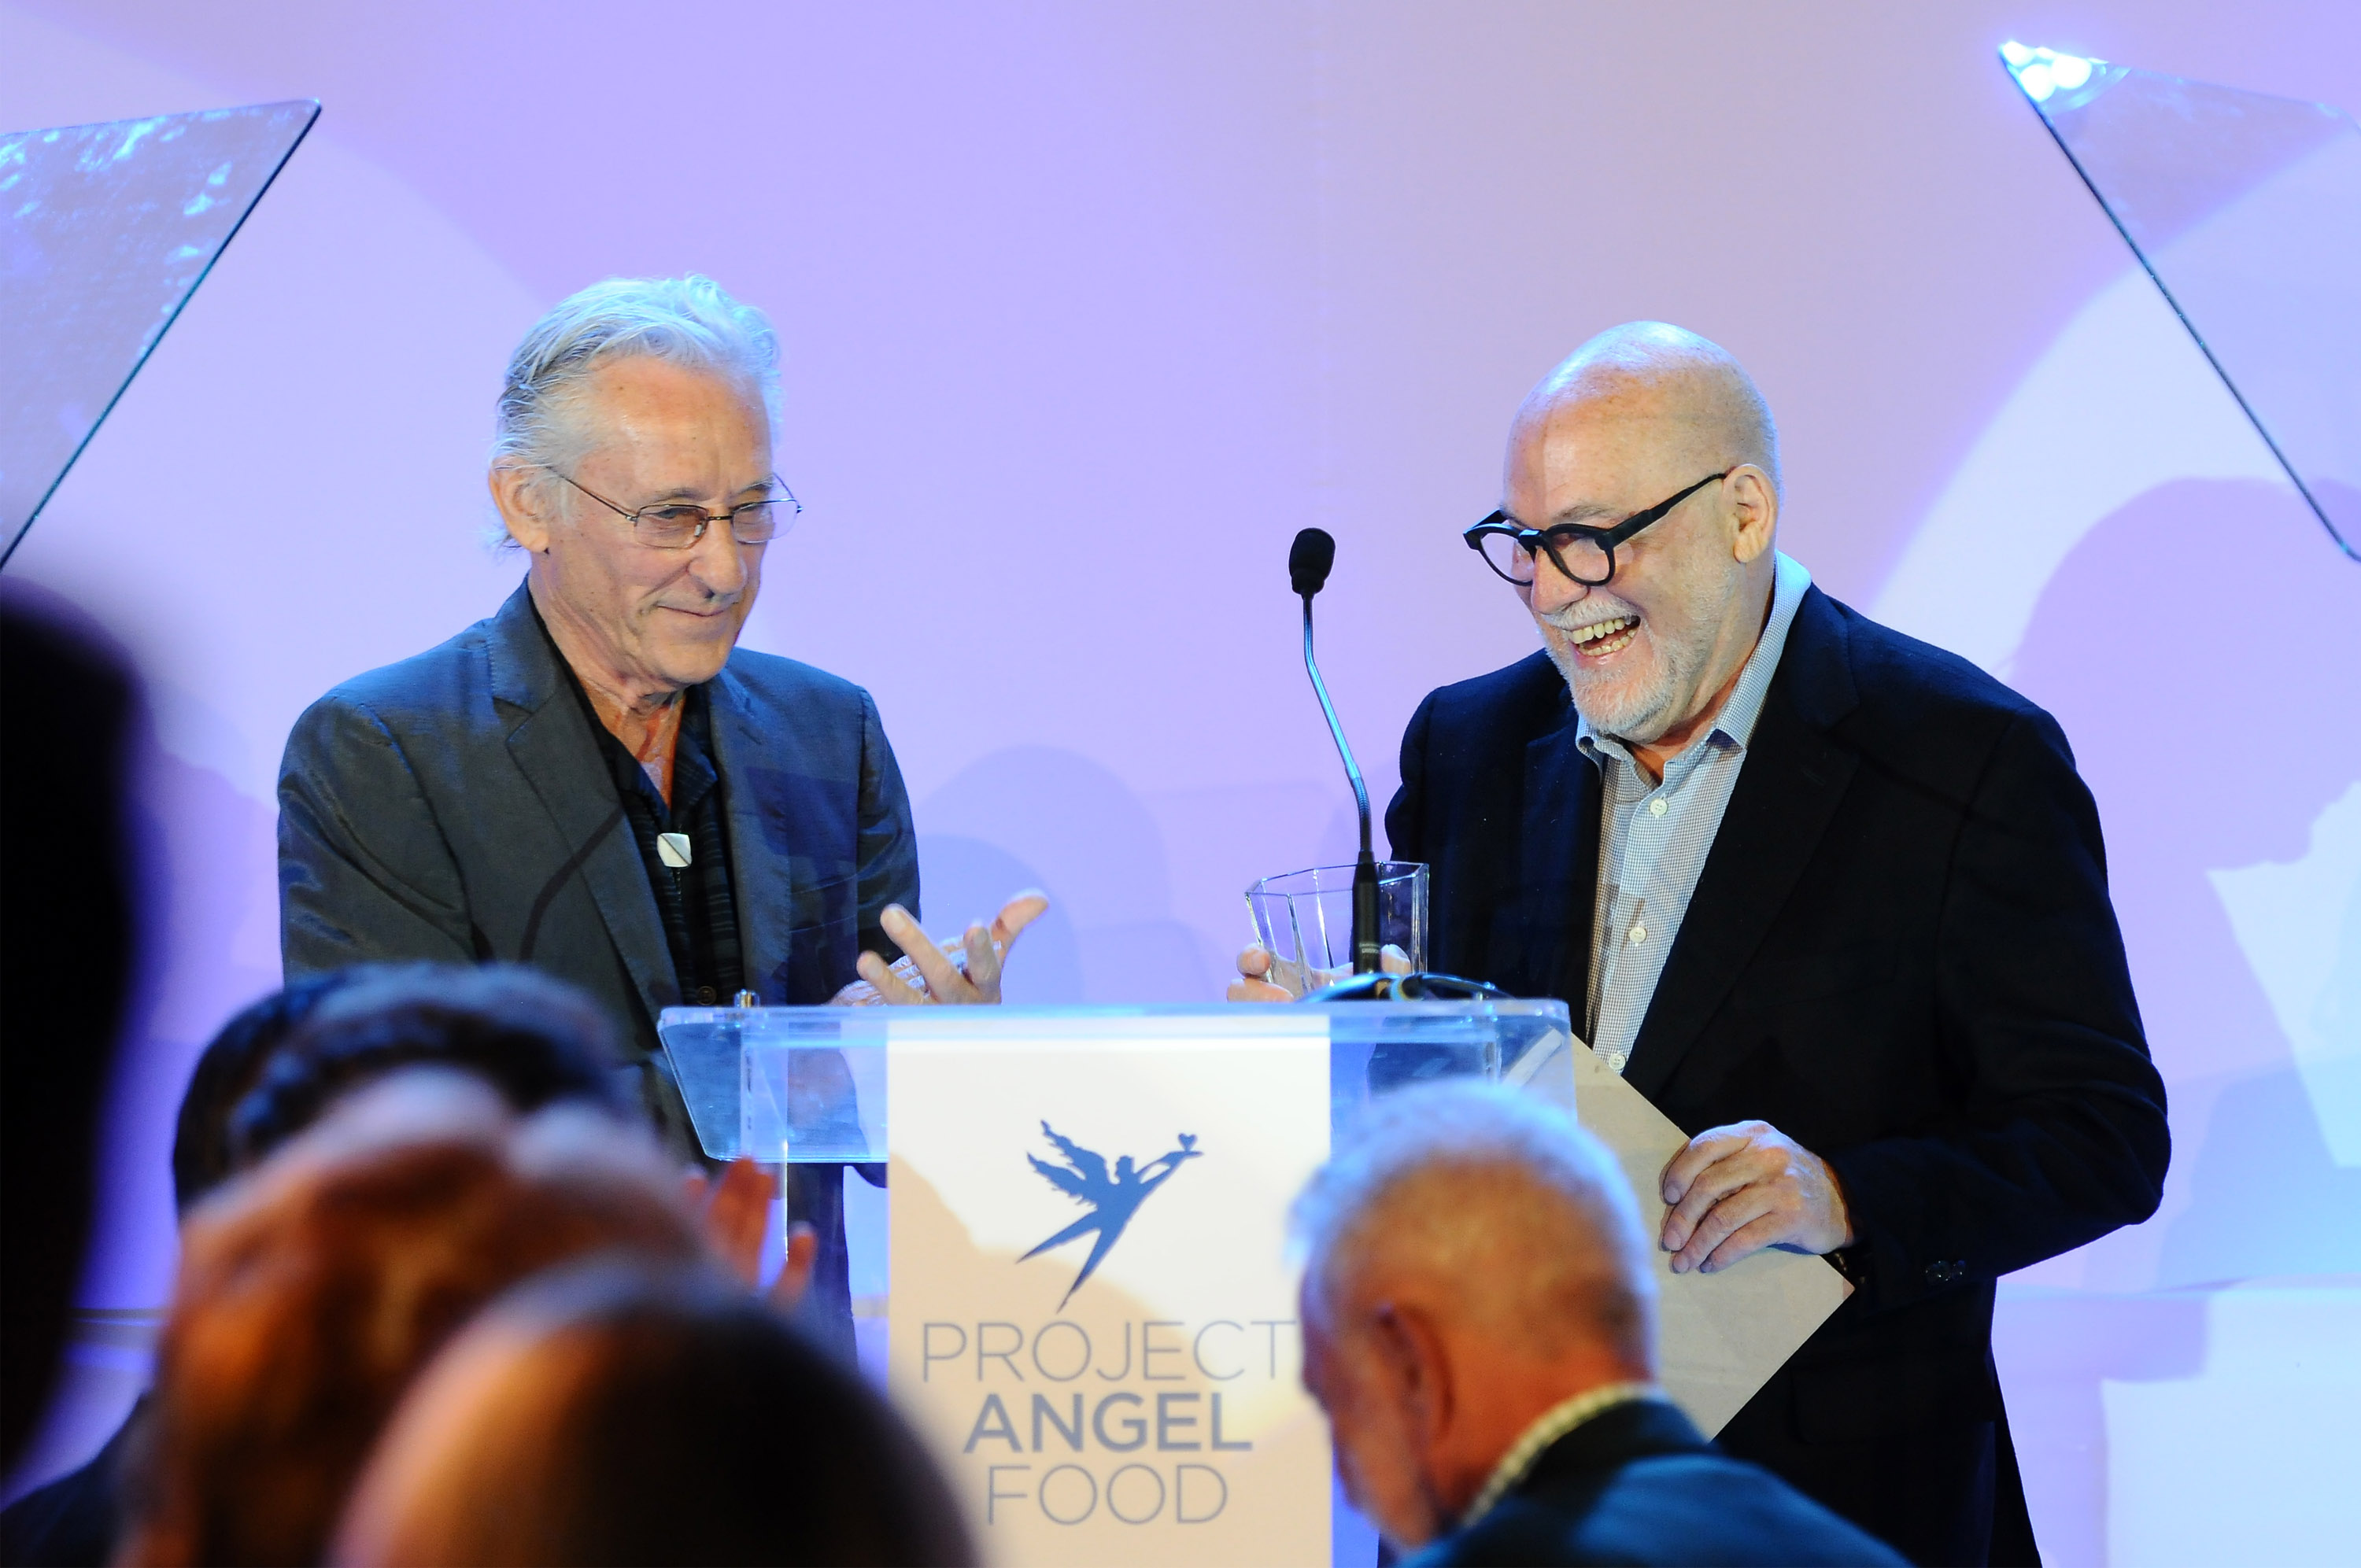 Ed Ruscha and Joseph Mannis (Photo by Araya Diaz/Getty Images for Project Angel Food)